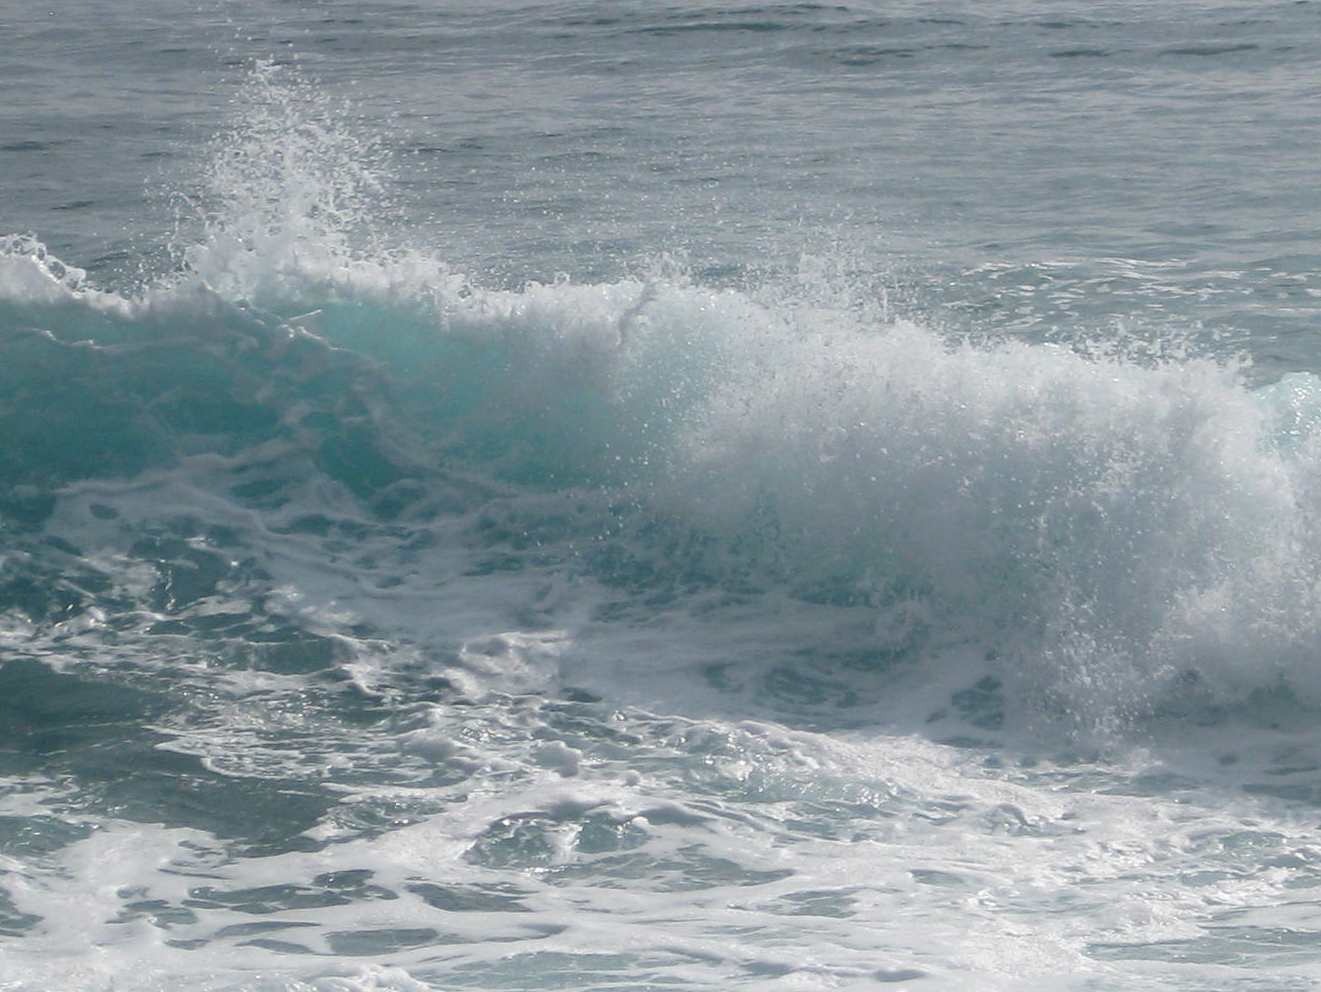 Kauai Beach Waves 1